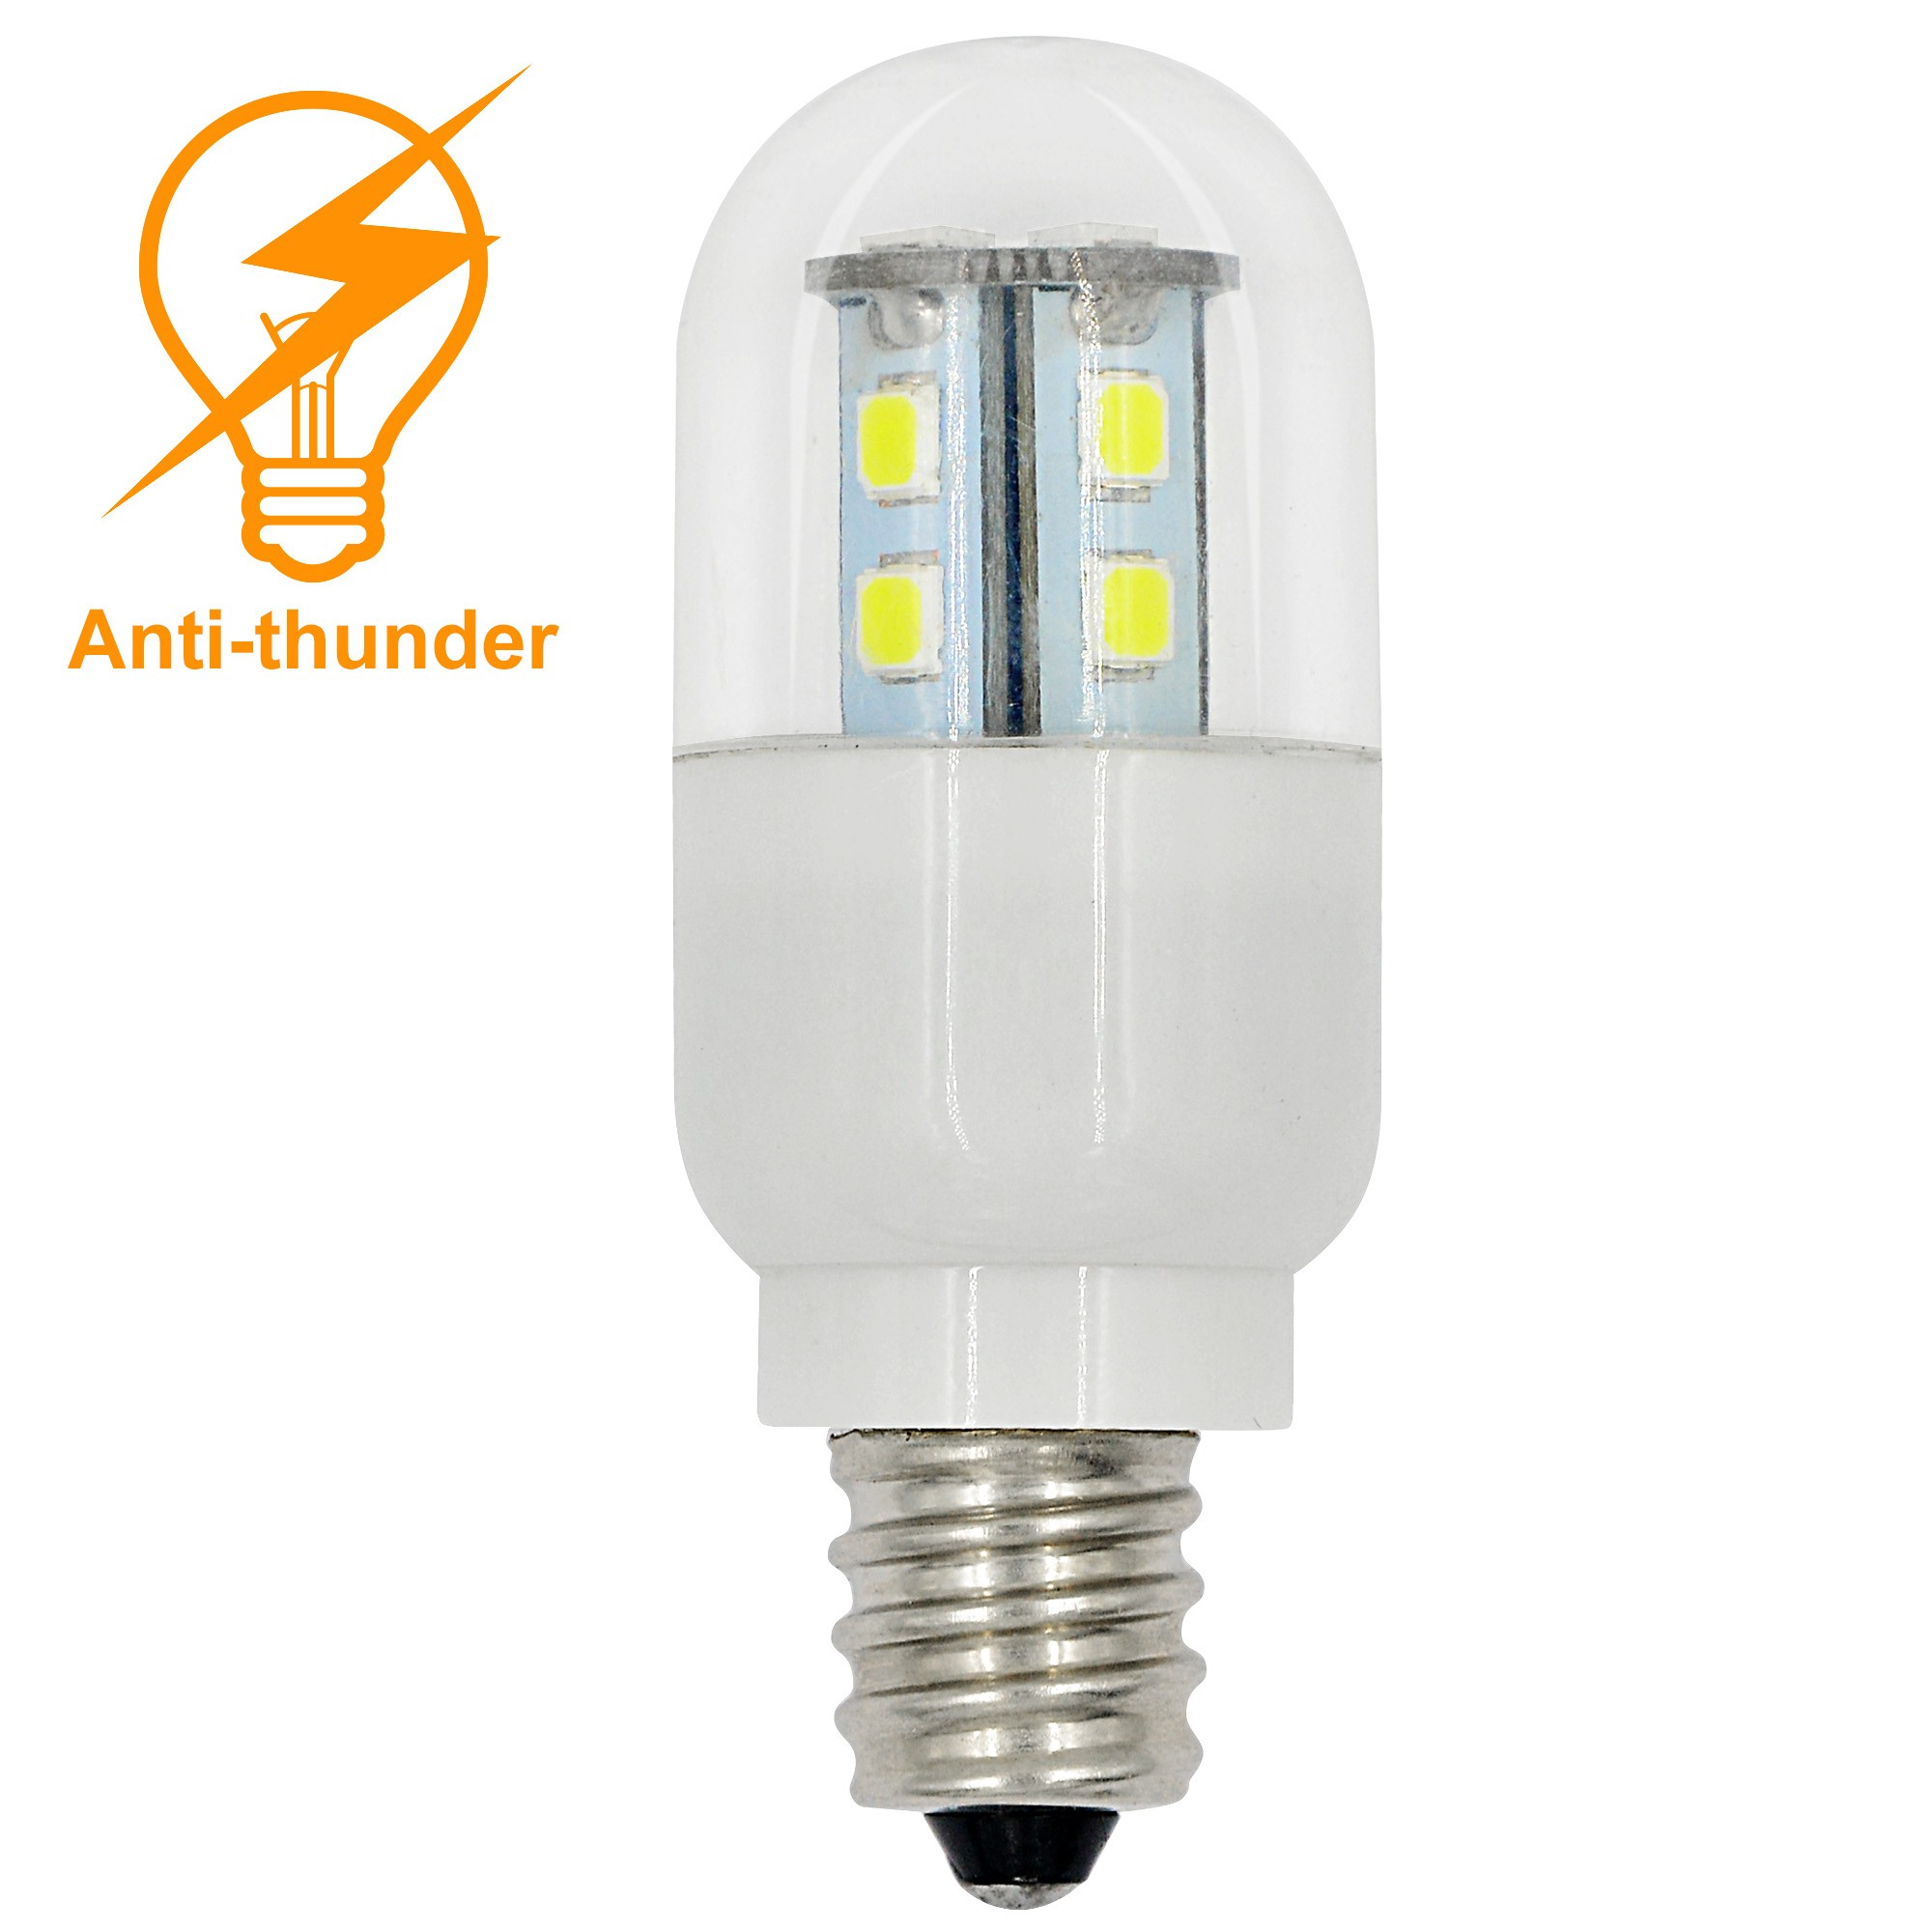 Mengsled Mengs Anti Thunder E12 1w Led Light 7x 5050 Smd Led Bulb Lamp In Warm White Cool